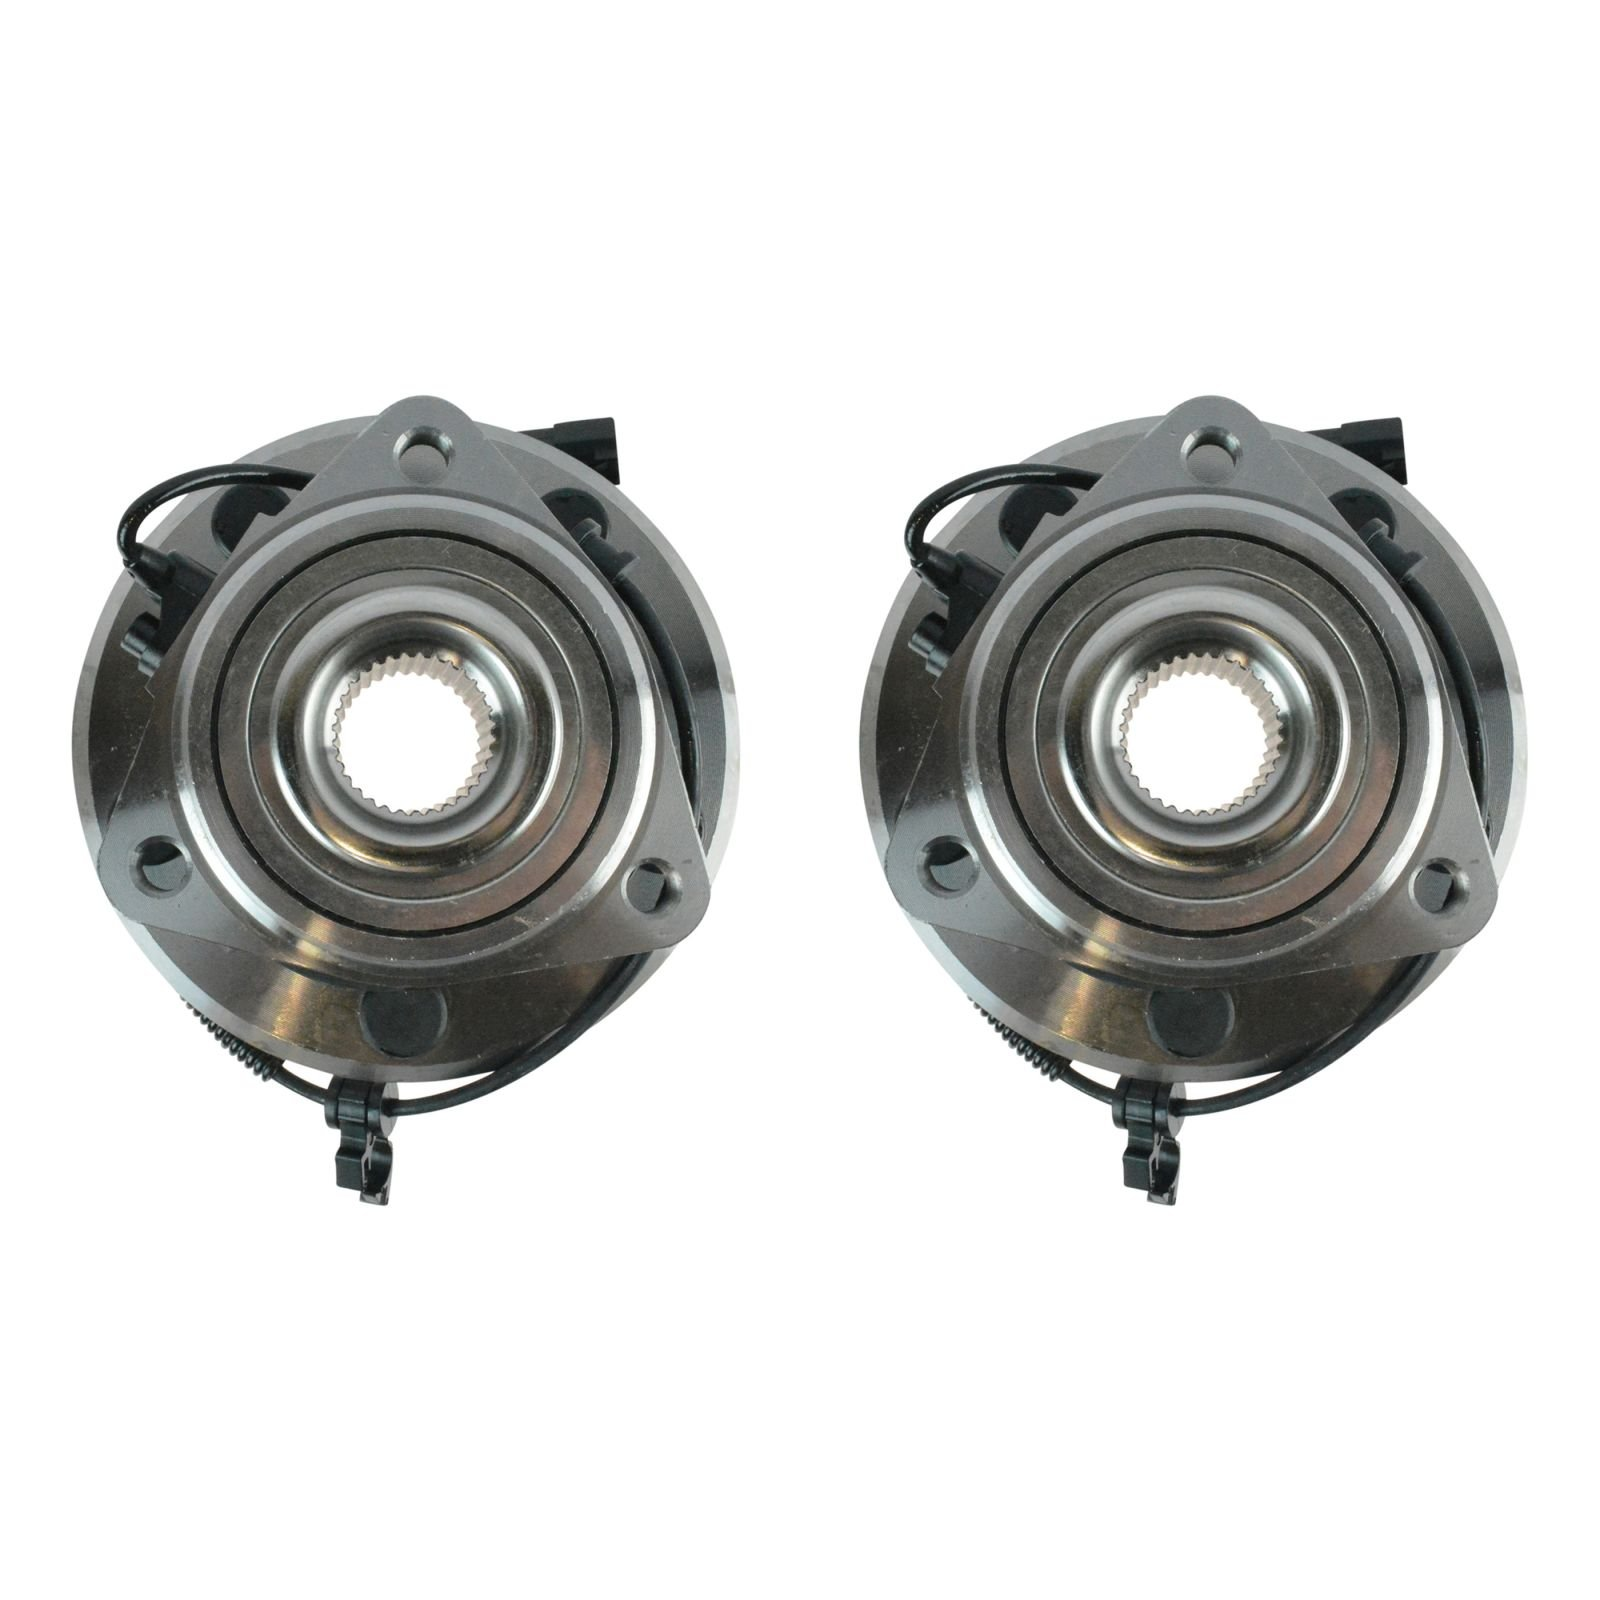 TRQ Wheel Bearing & Hub Assembly Pair Kit LH & RH Front for Jeep Wrangler by TRQ (Image #4)